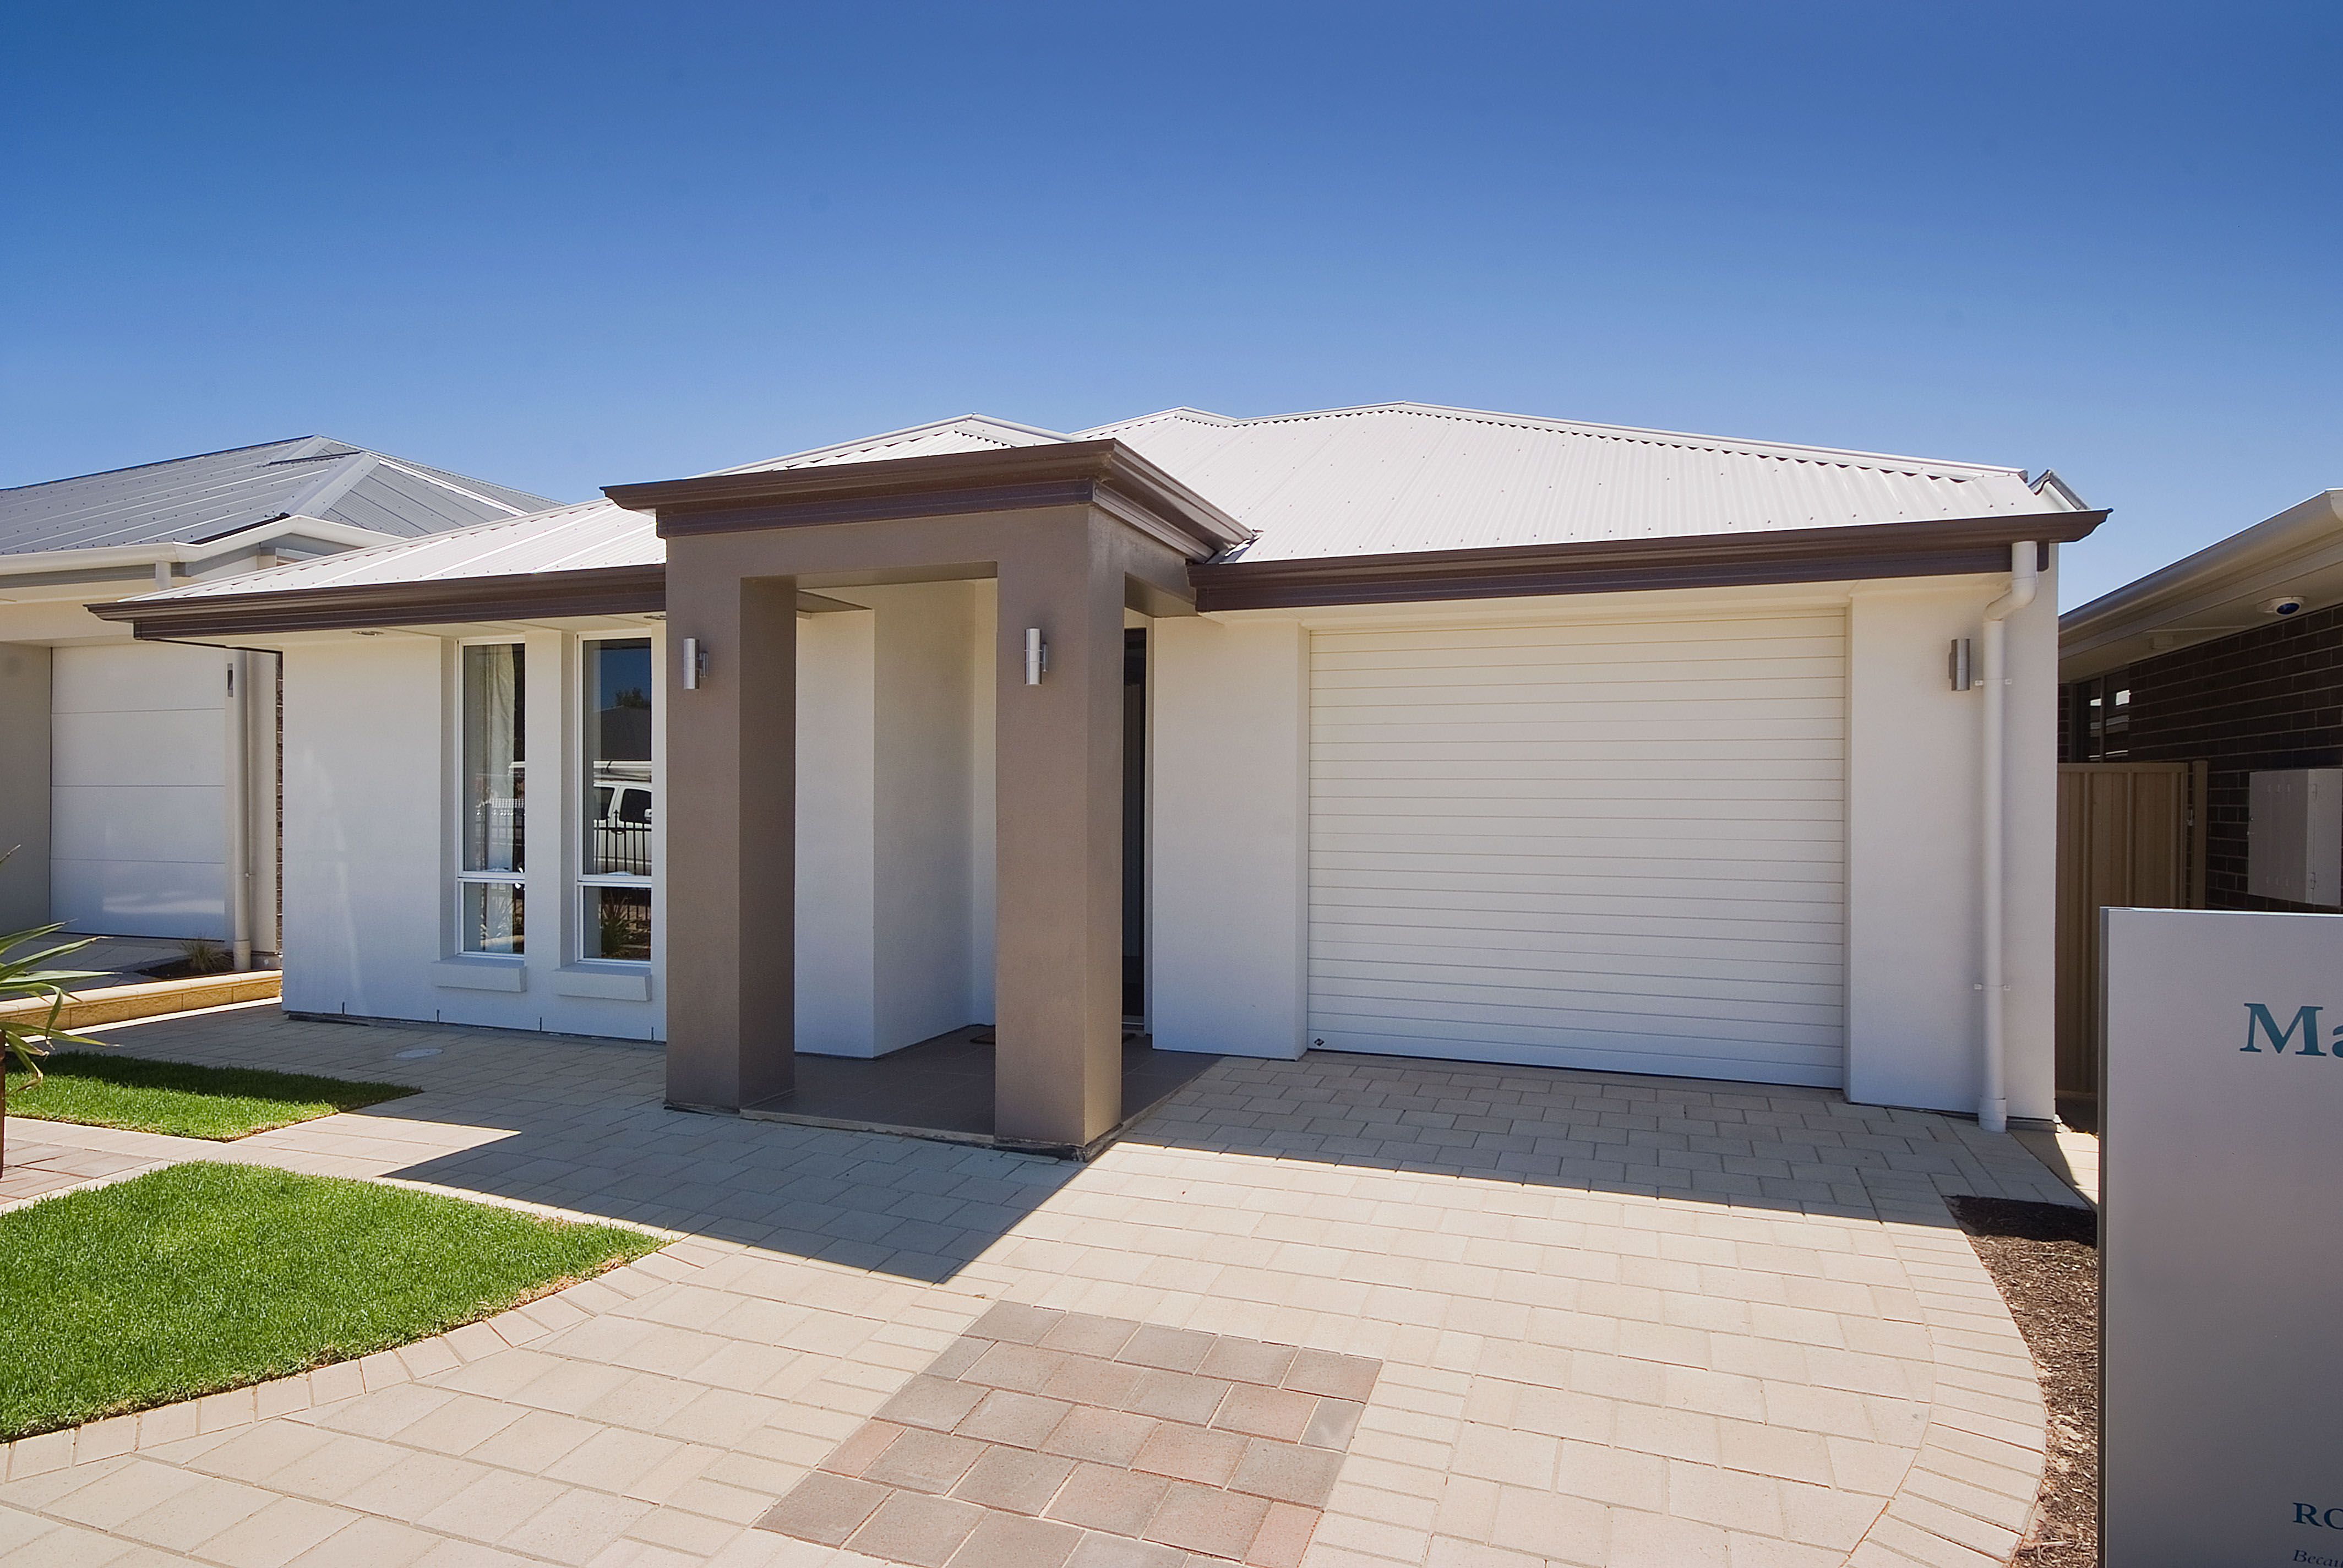 Front Elevation Designs Australia : Image result for portico elevation view exterior